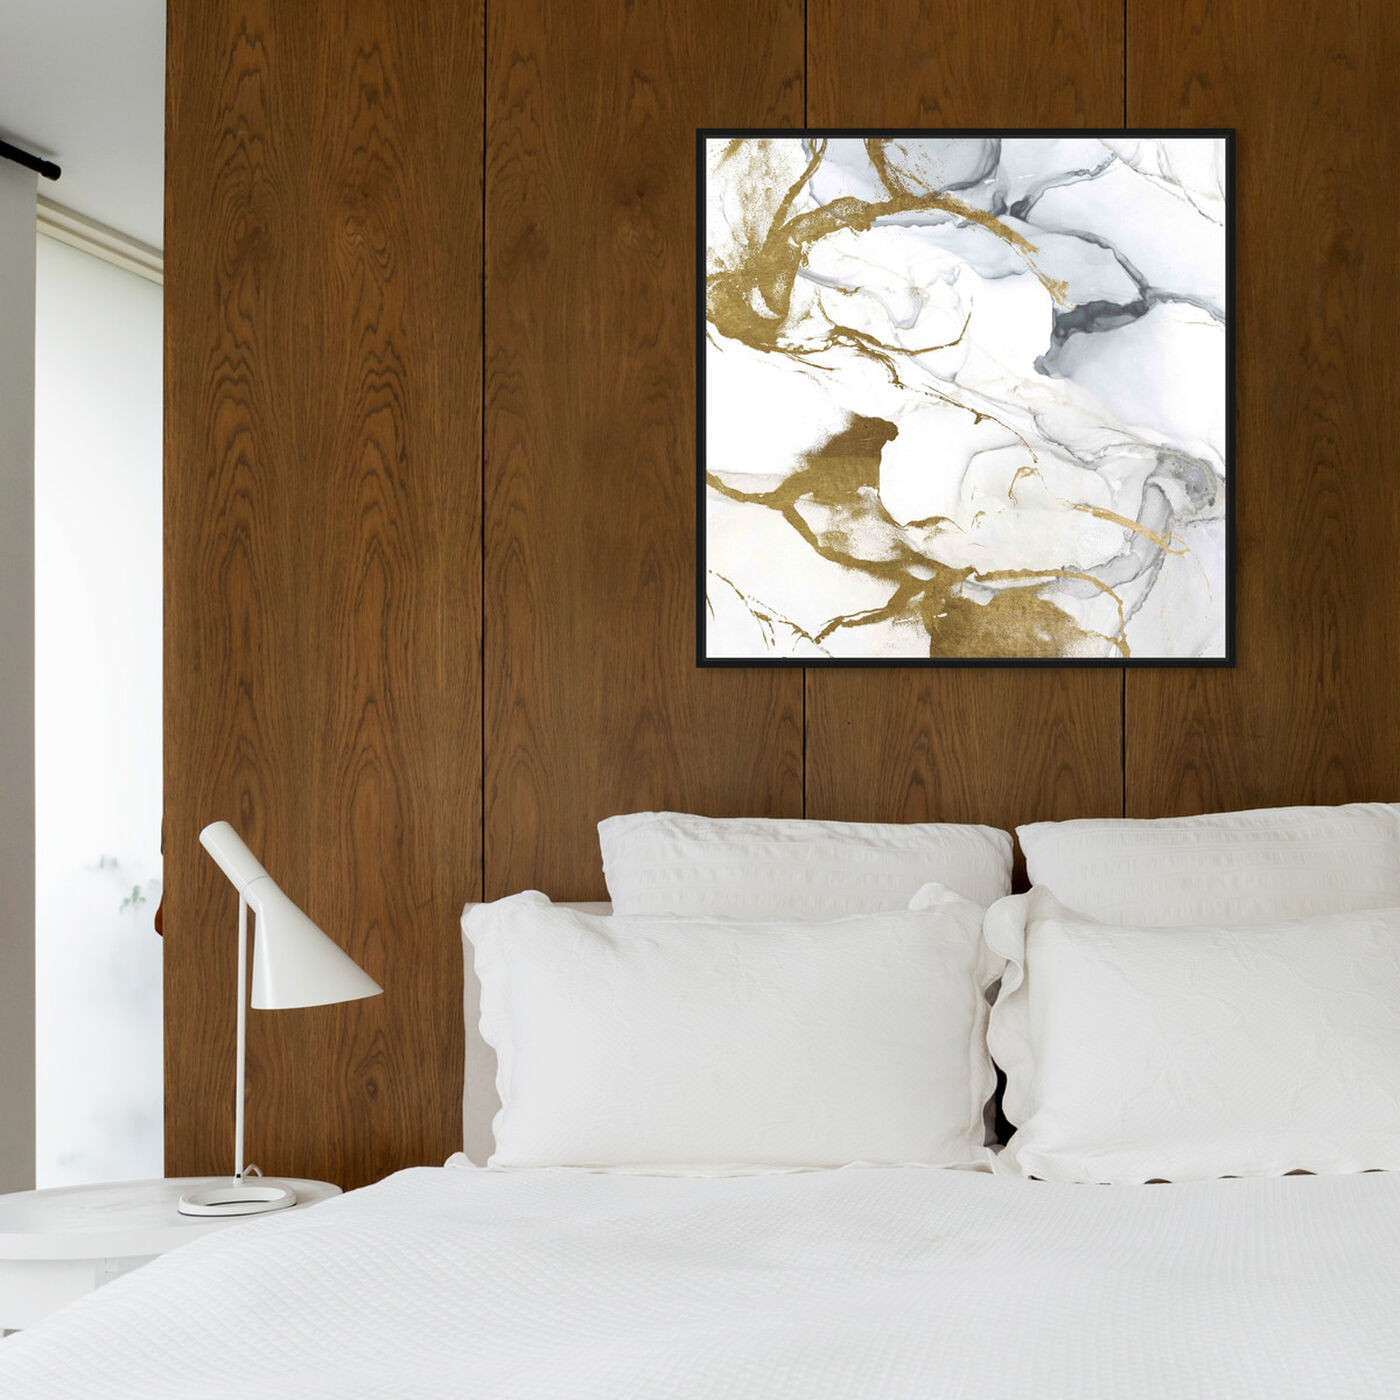 Hanging view of Love Marble featuring abstract and crystals art.